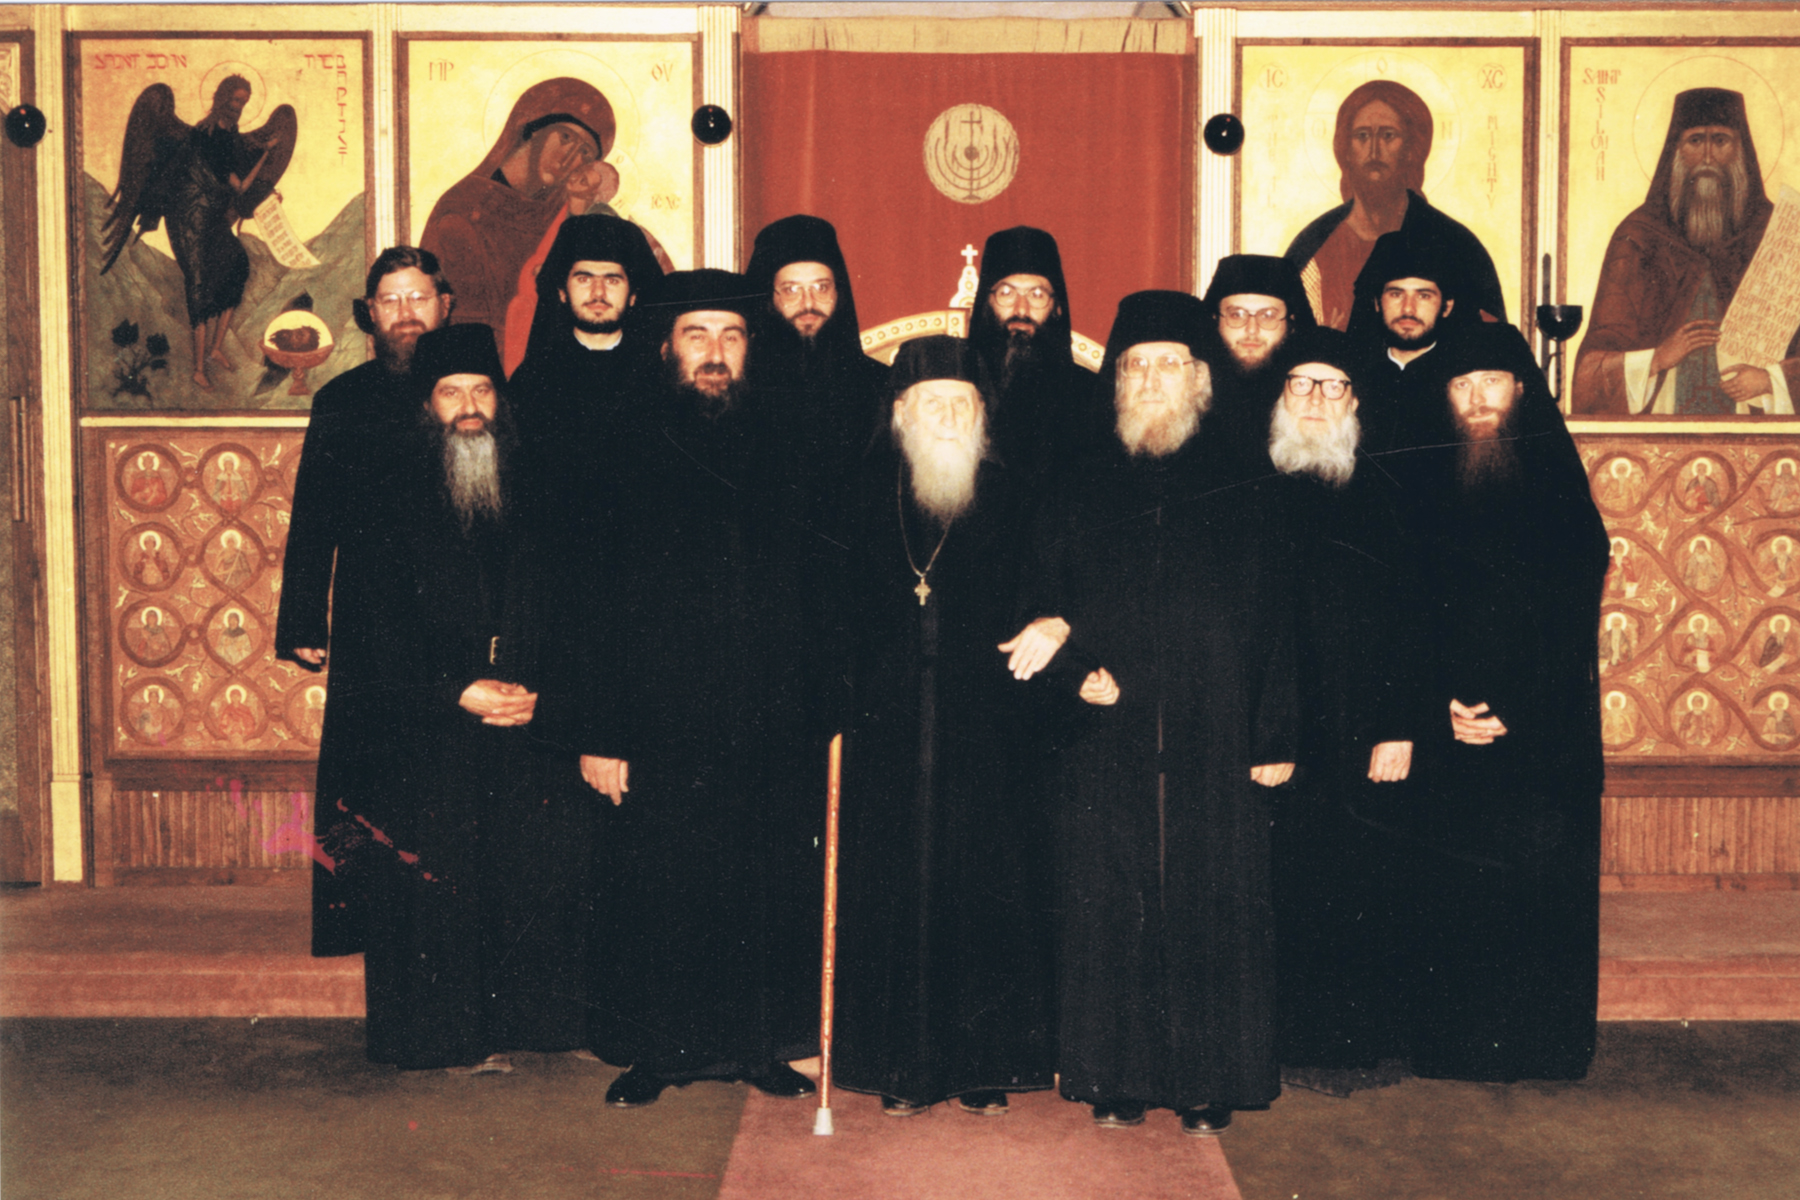 Members of the monastic community Patriarchal Stavropegic Monastery of St. John the Baptist, Essex, England. In the centre the beloved Elder Sophrony Sakharov, 1990. Courtesy: Michael Family Archives.